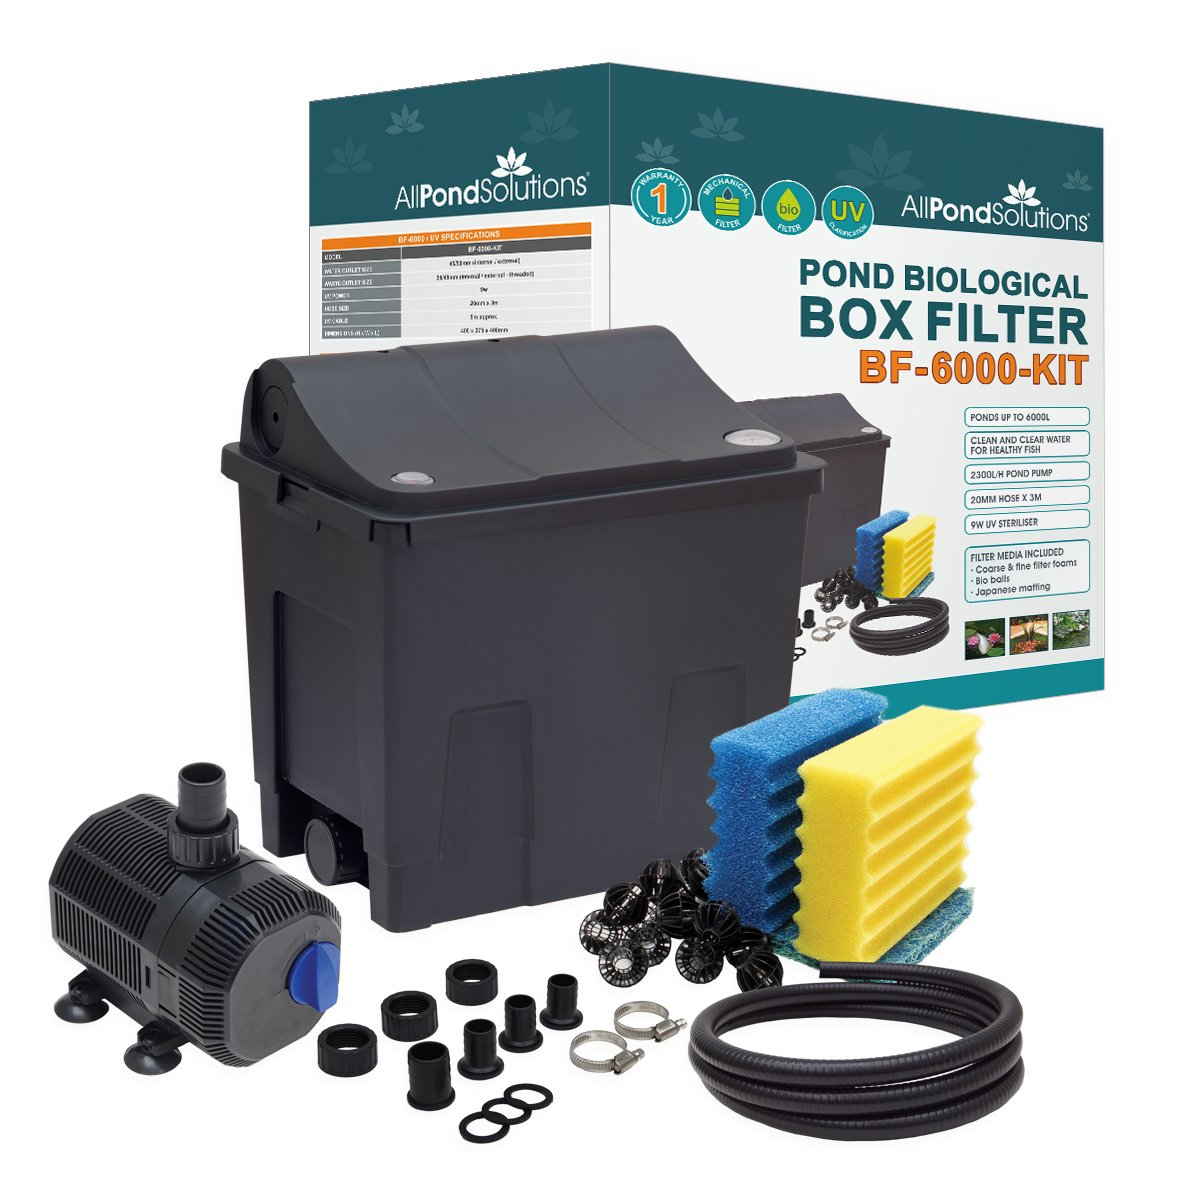 All Pond Solutions Koi/Goldfish Pond Filter Box Full Kit, Small, 9 W BF-6000-KIT